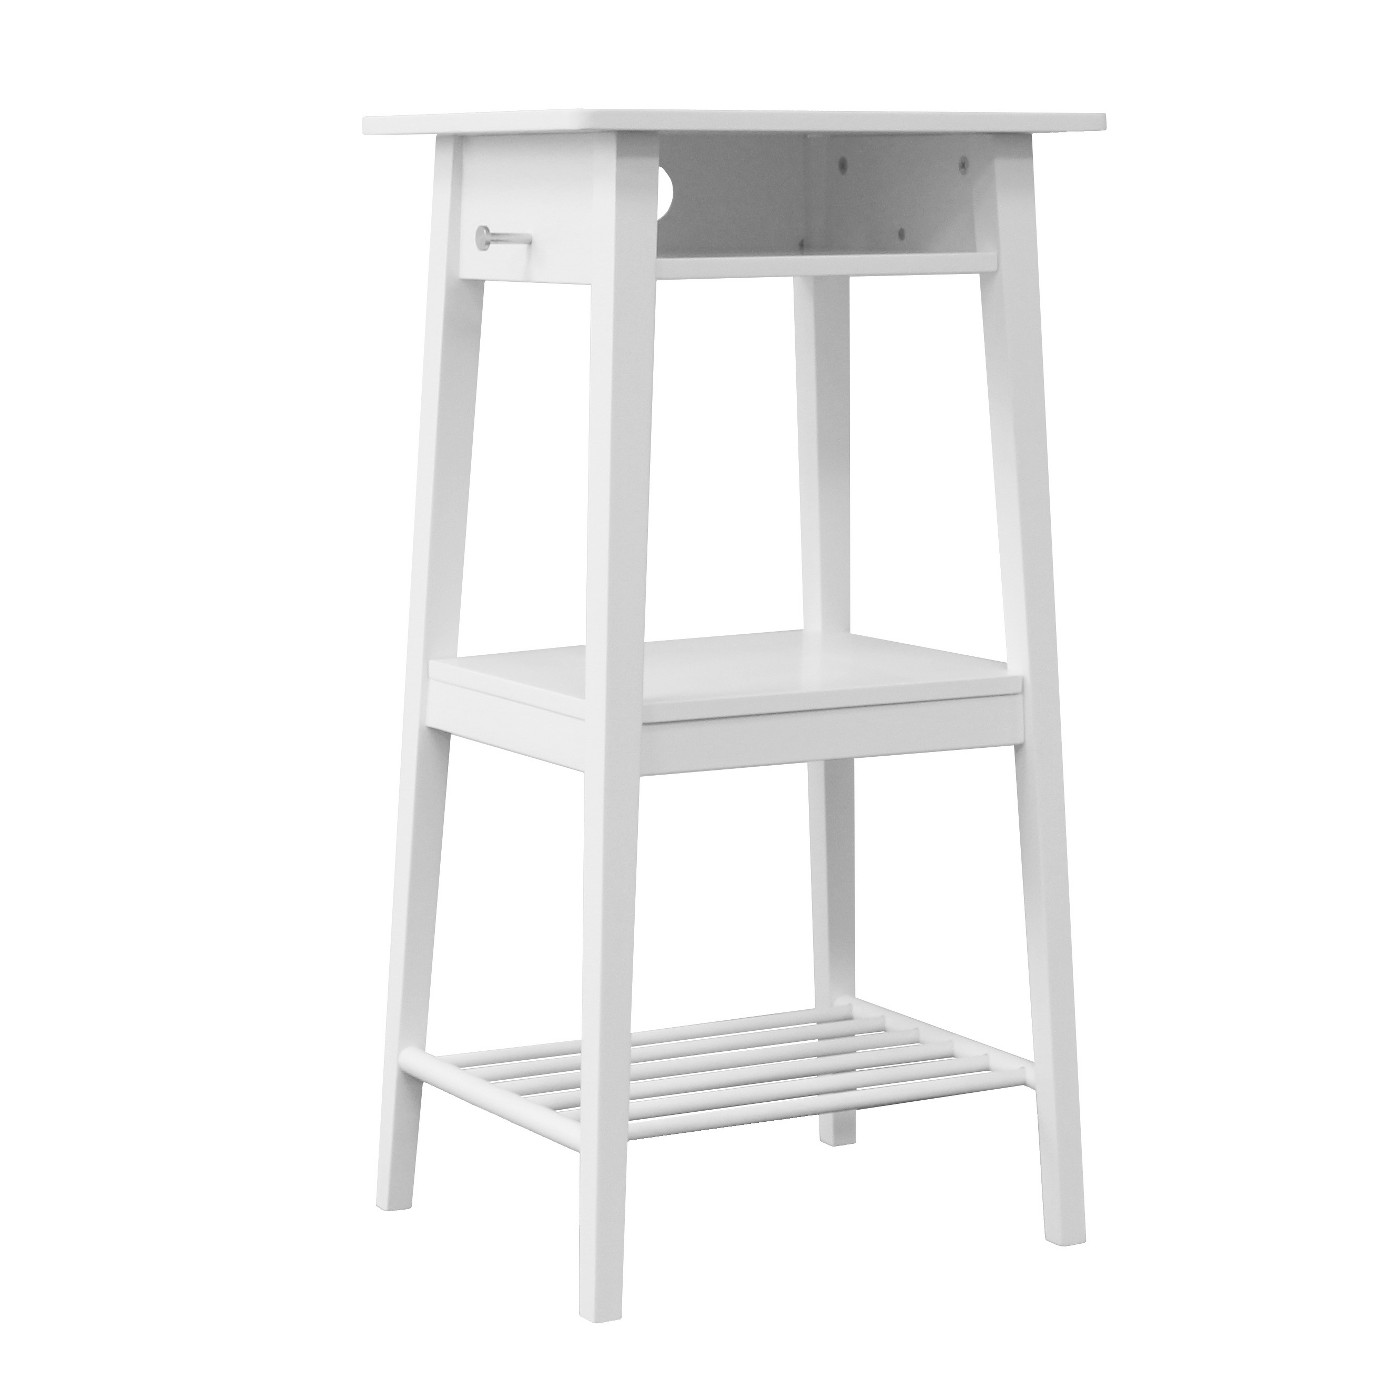 Room Essentials Standing Laptop Desk with Backpack Peg (White)